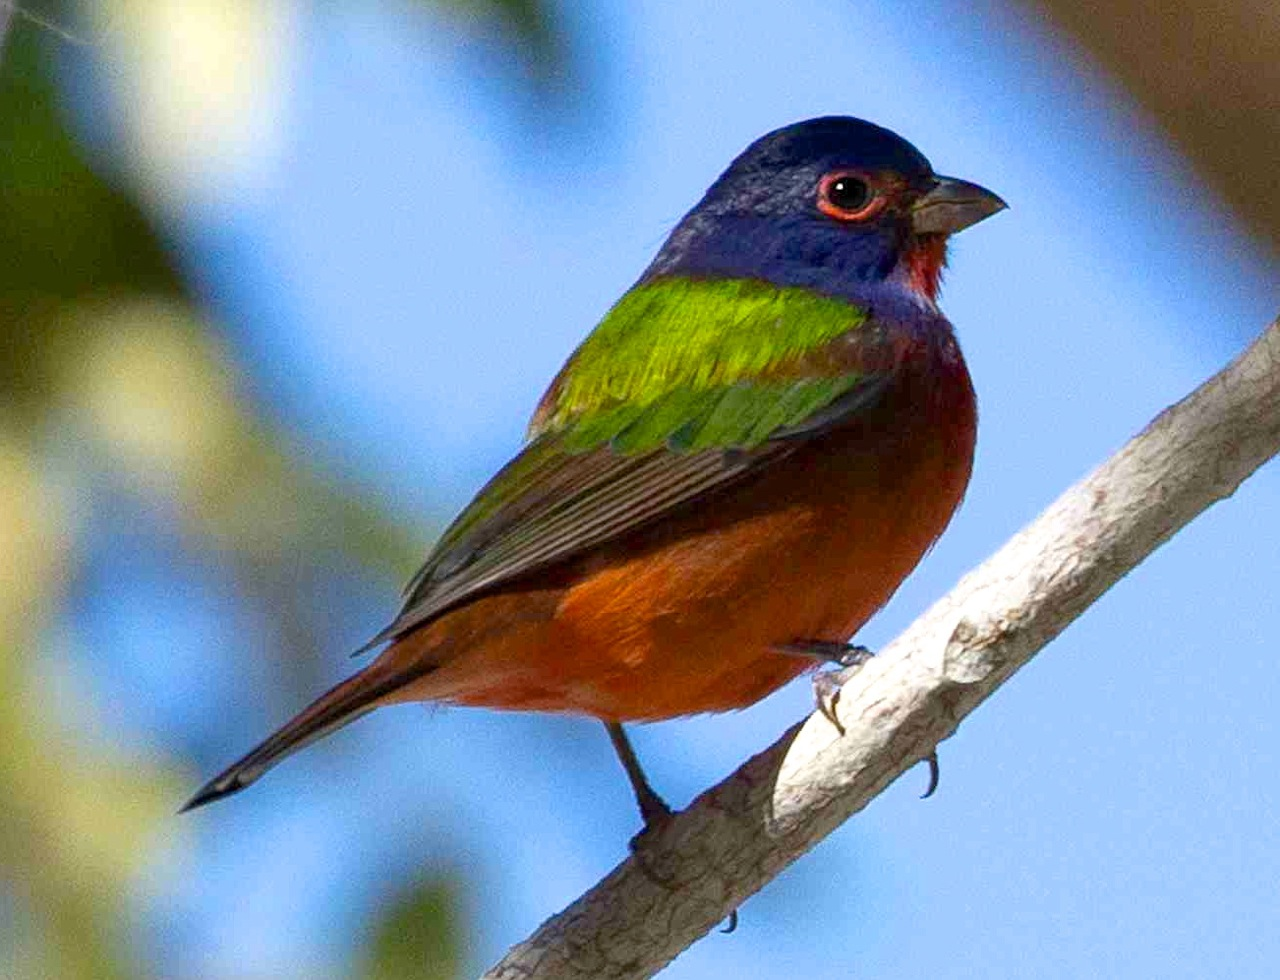 Painted Bunting, Abaco (Tara Lavallee)